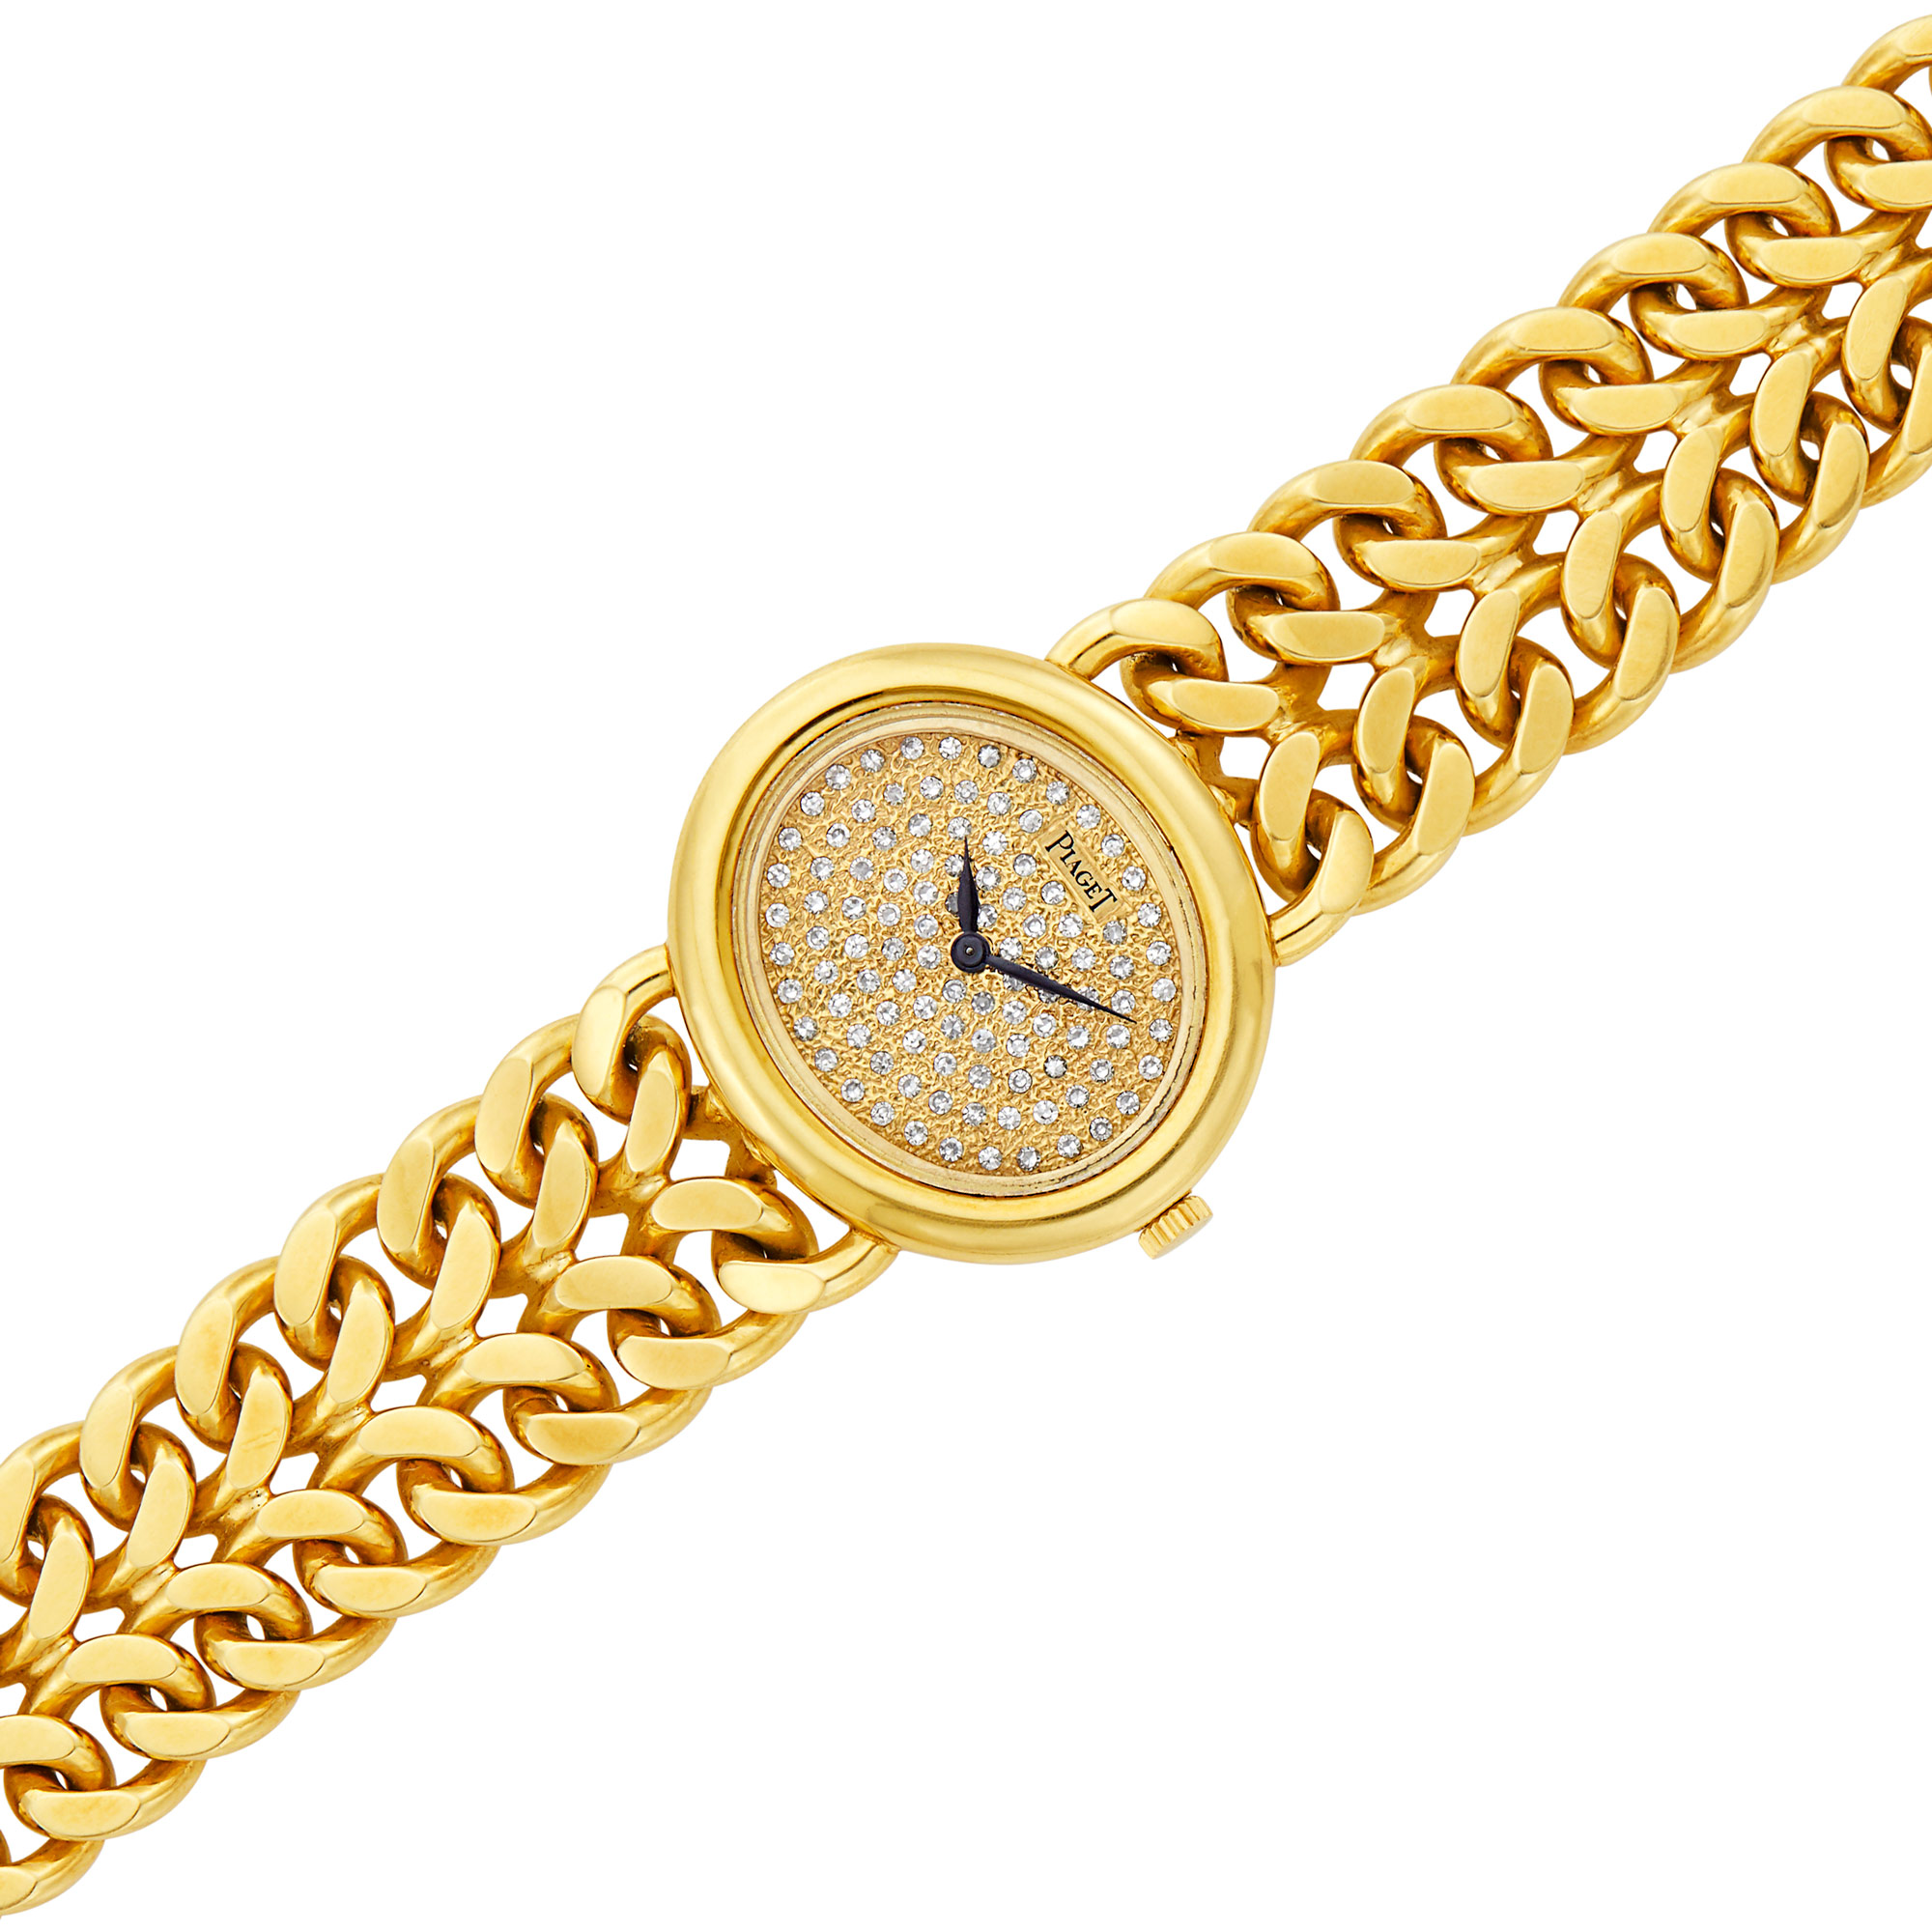 Lot image - Gold and Diamond Curb Link Wristwatch, Piaget